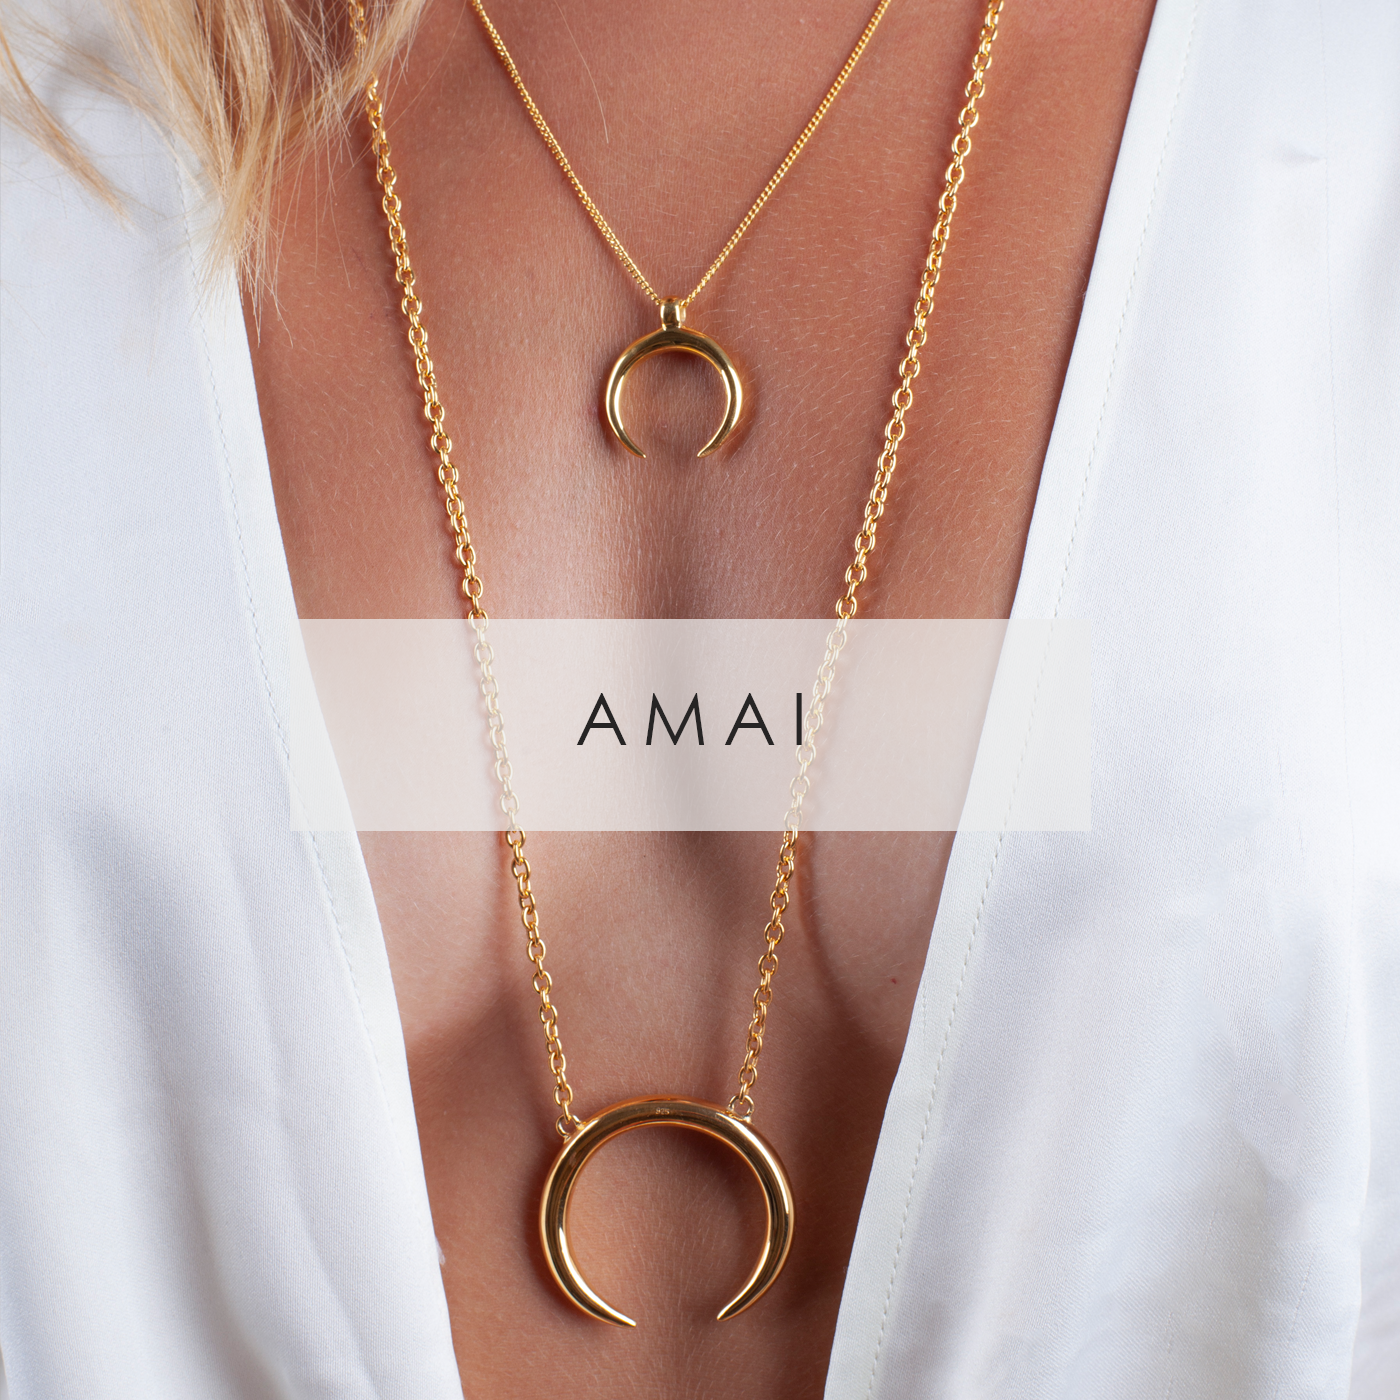 Amai jewellery shop Nottingham